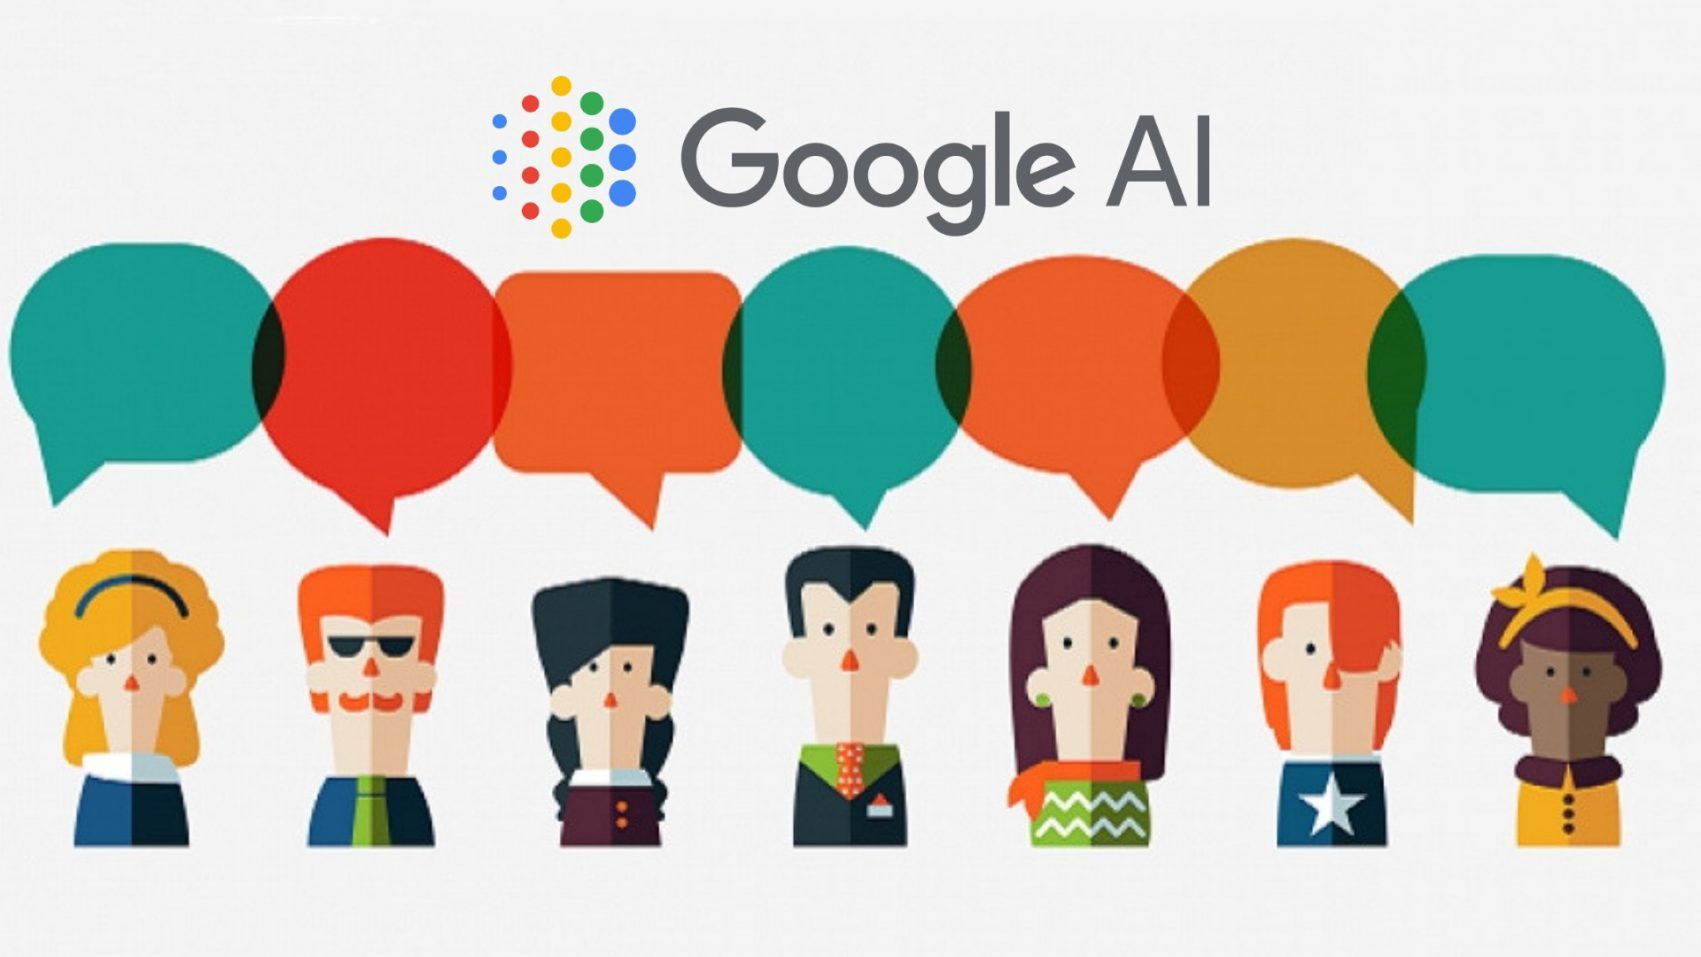 Google BERT NLP Technology